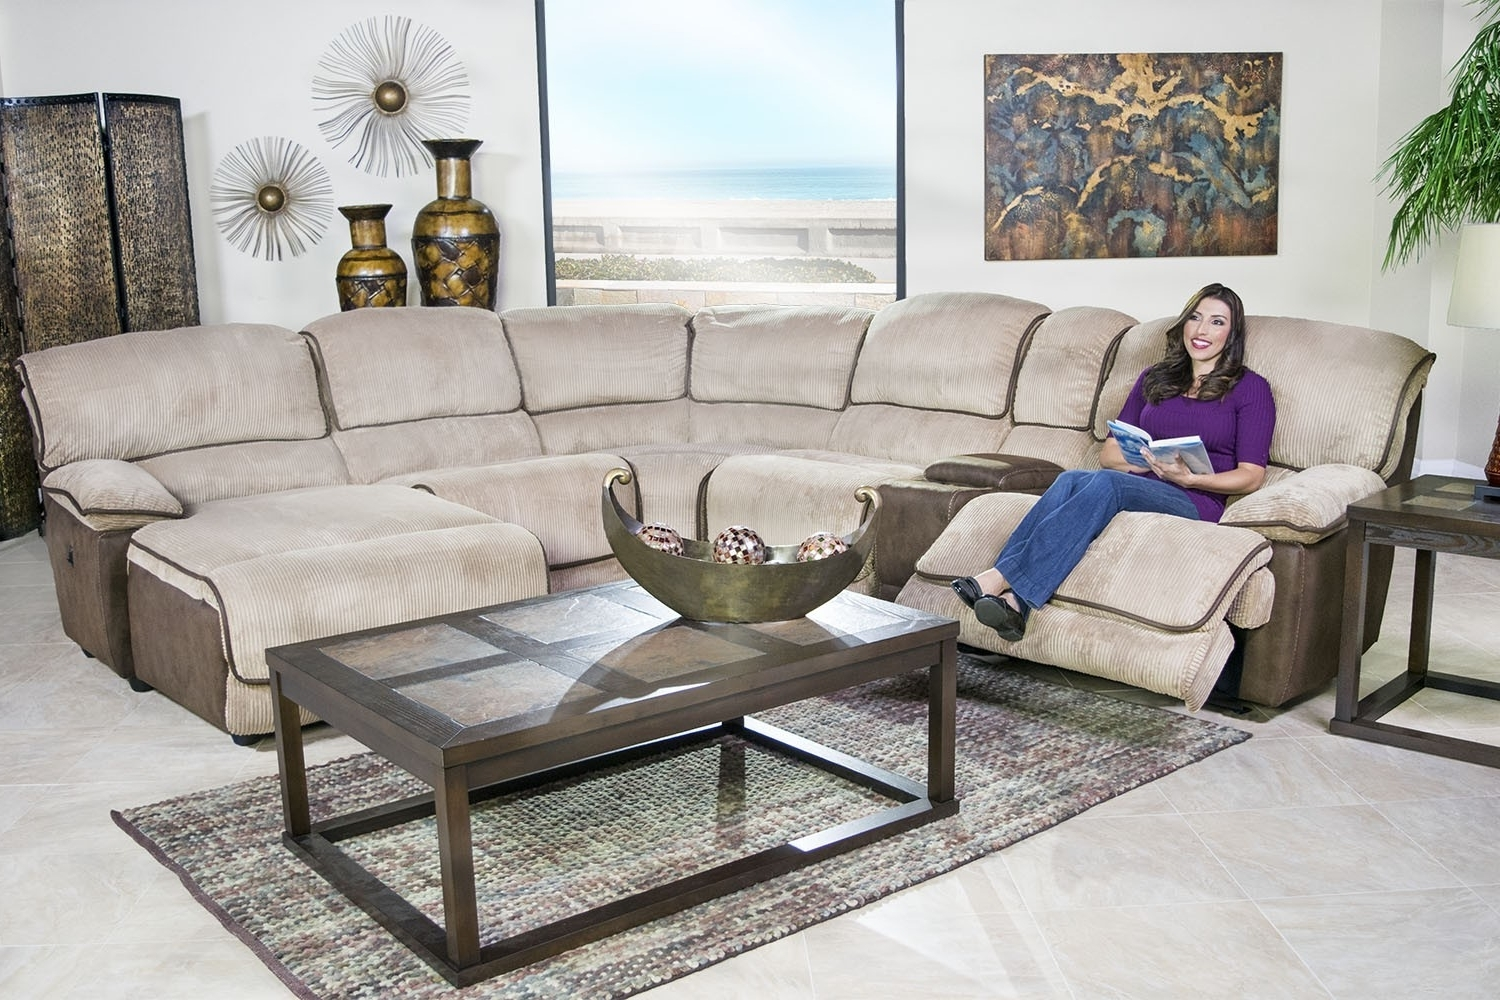 Awesome Sectional Sofa Austin – Buildsimplehome With 2018 Sectional Sofas At Austin (View 13 of 15)